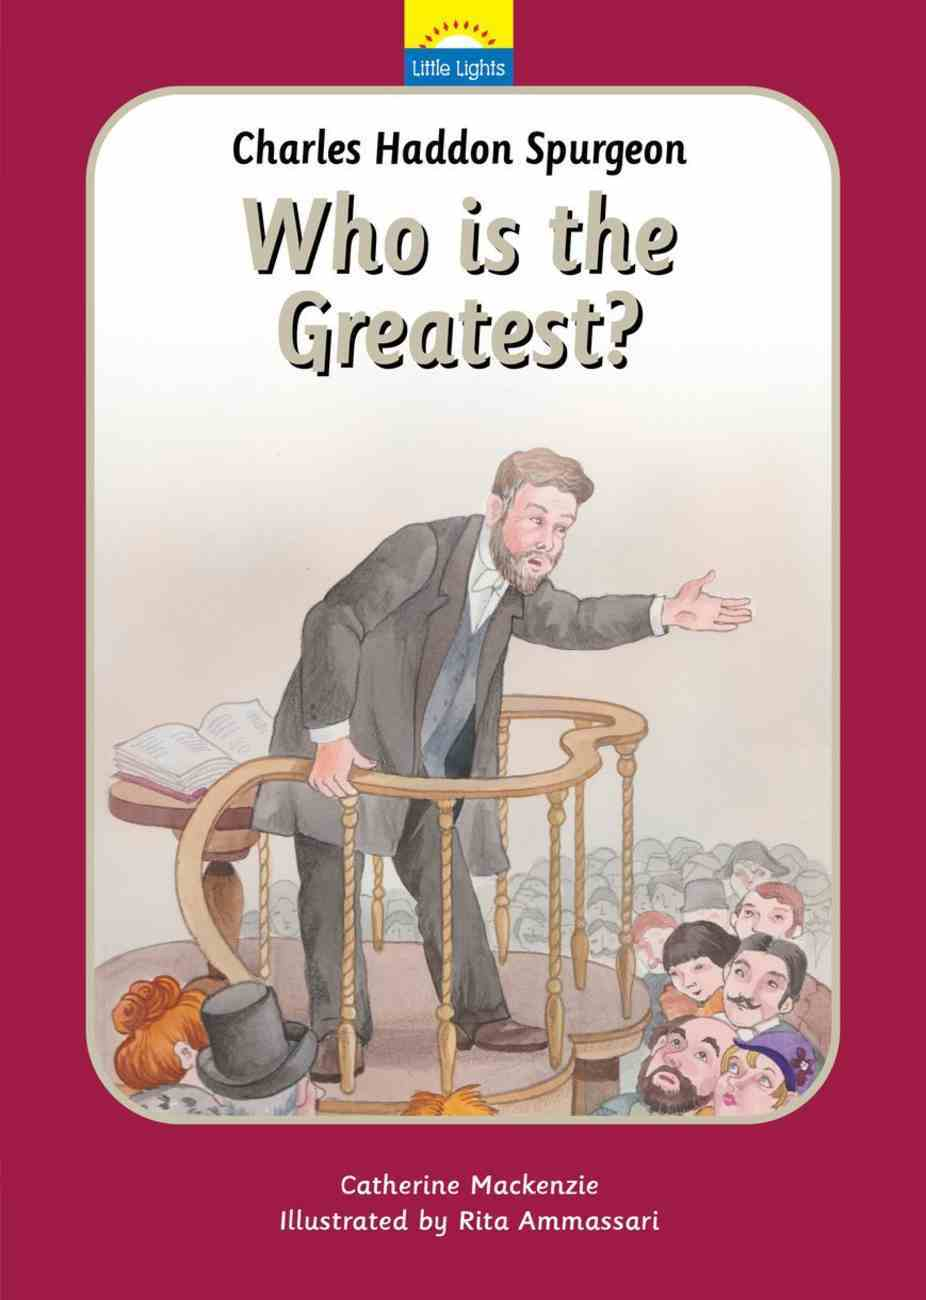 Charles Haddon Spurgeon - Who is the Greatest? (Little Lights Biography Series) Hardback